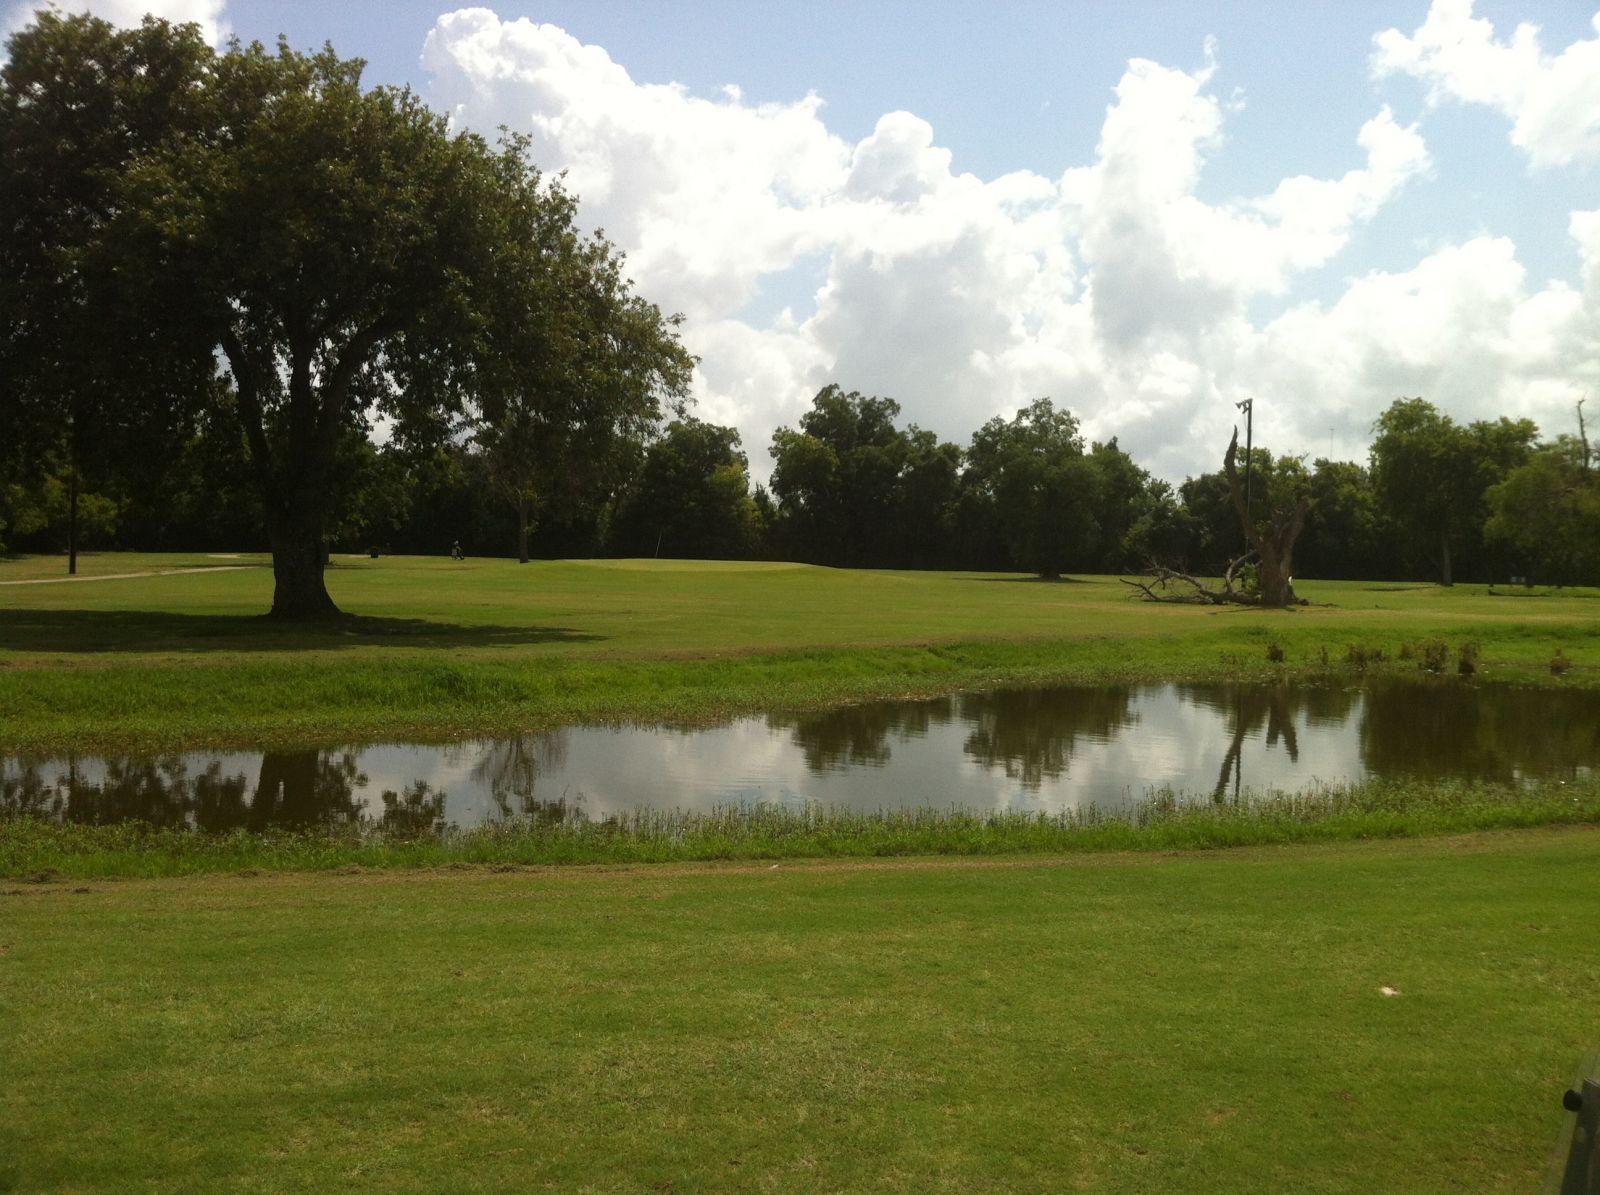 A pond on the course at Hillcrest Golf Club